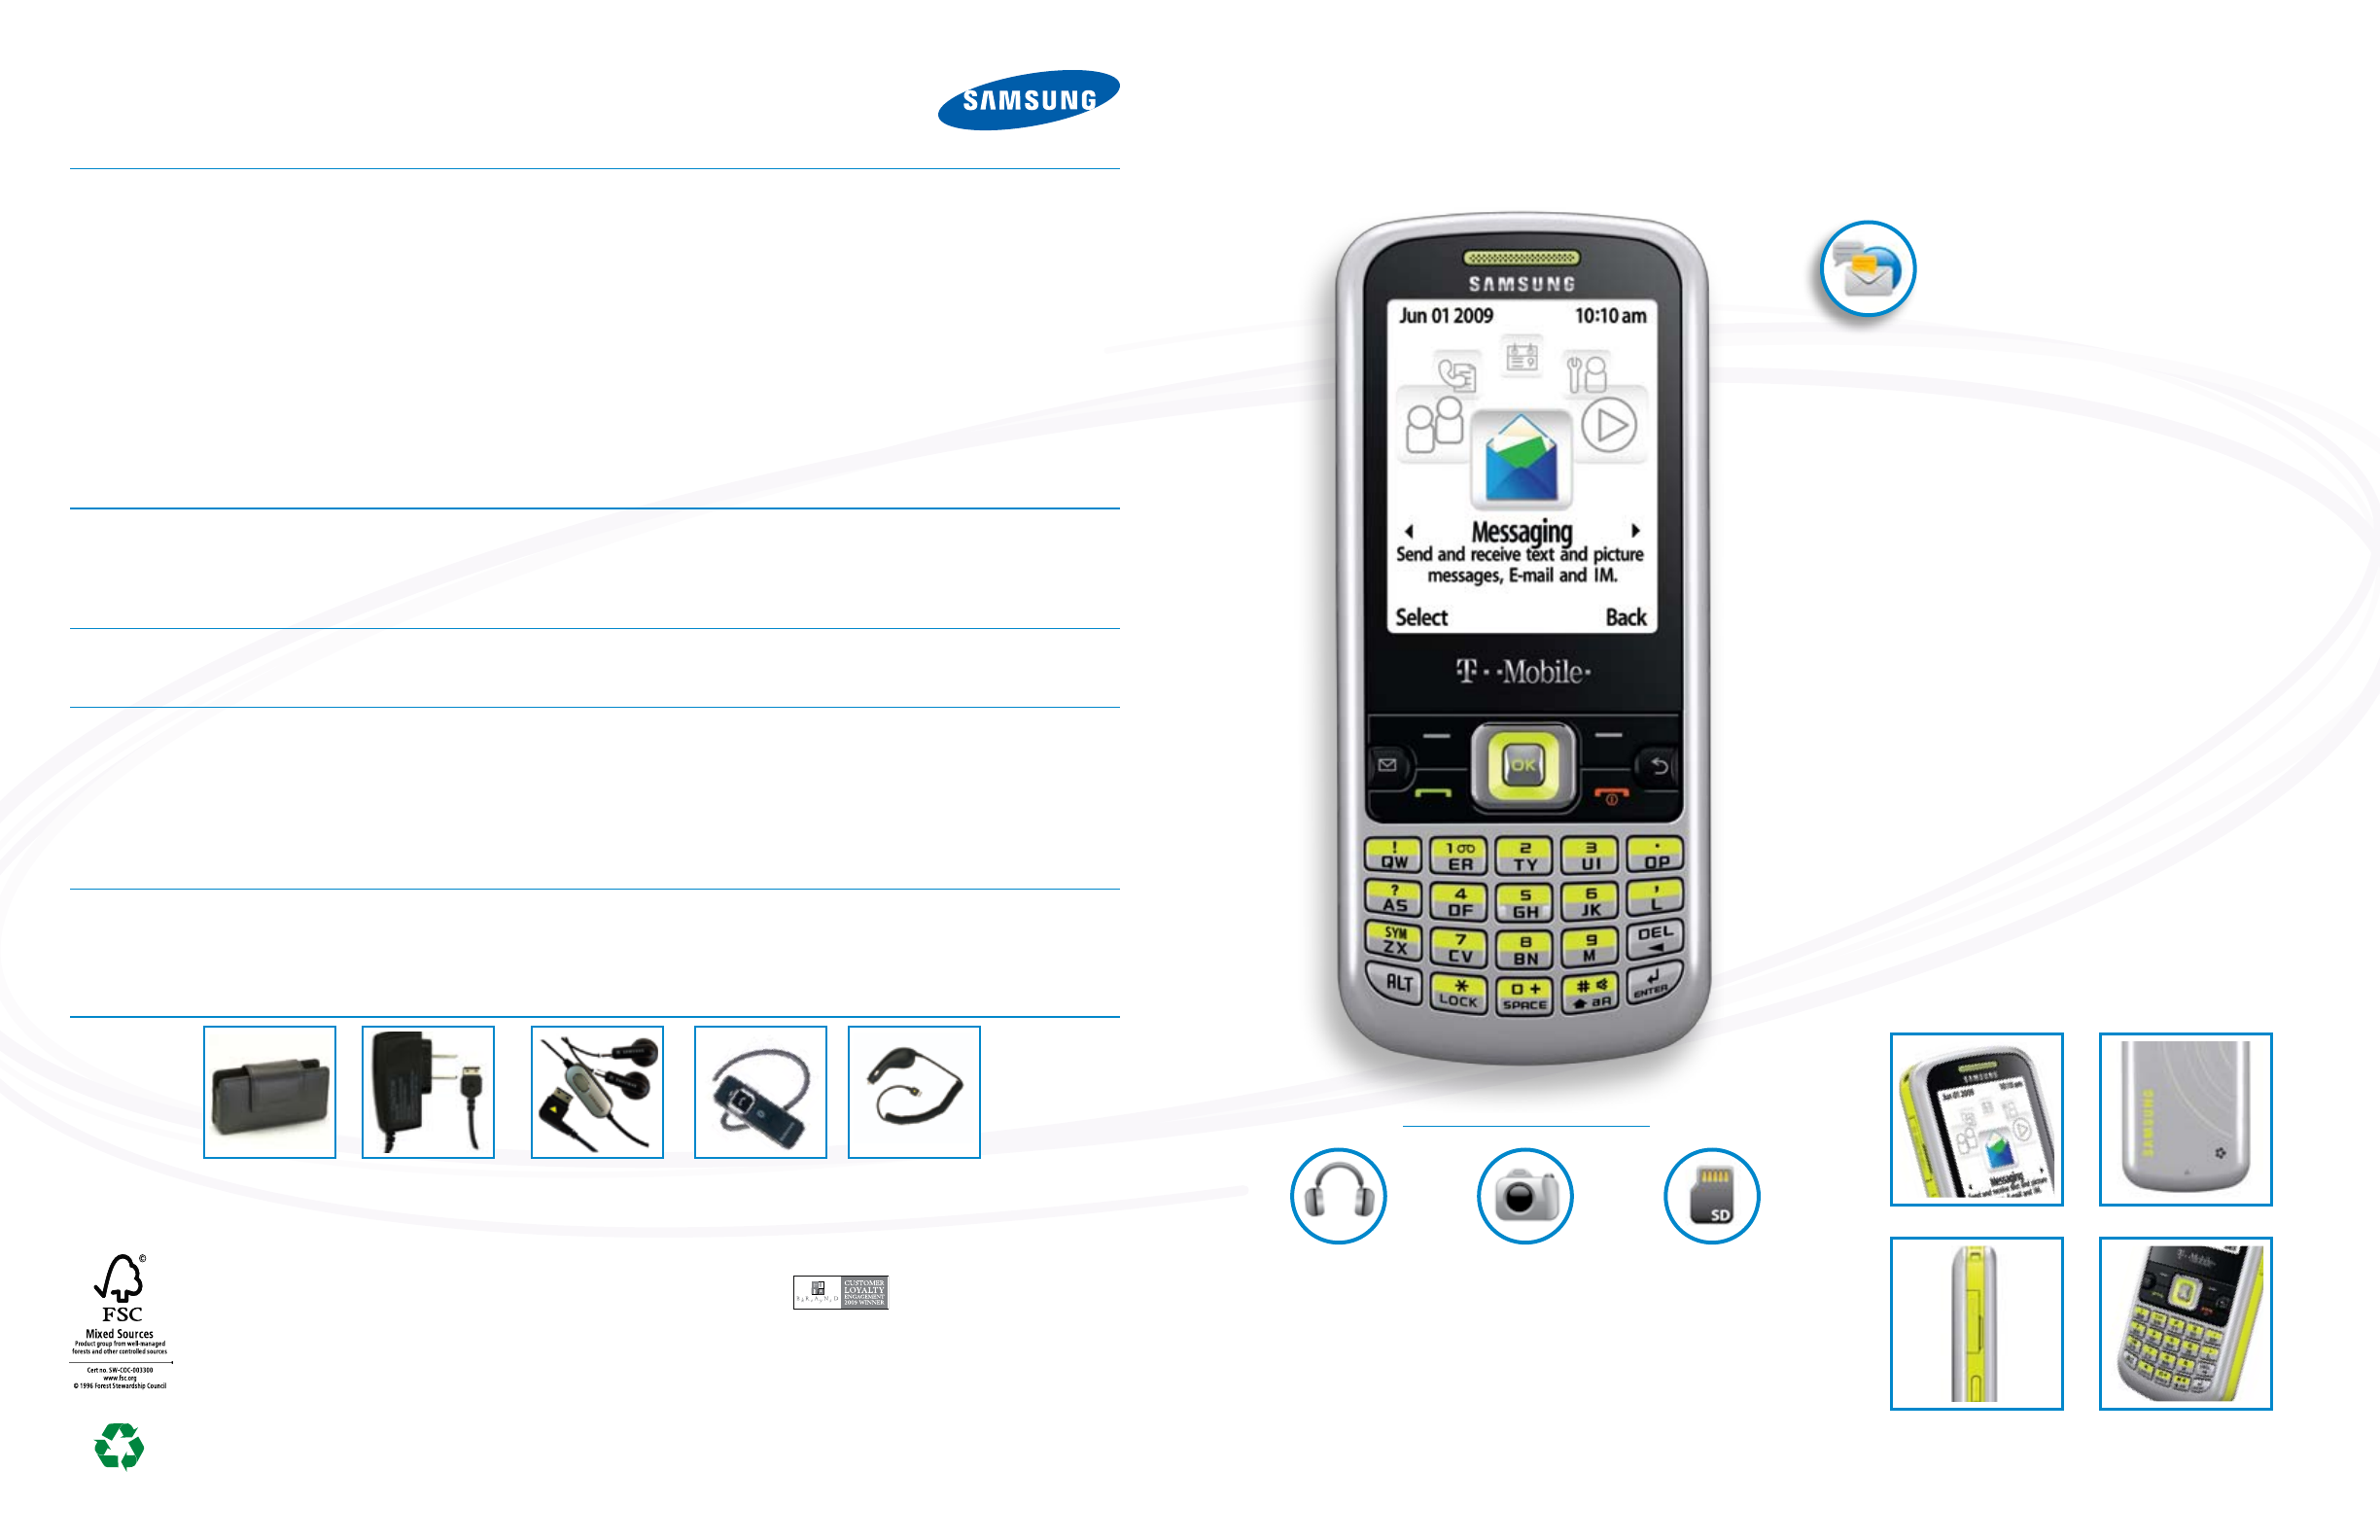 samsung cell phone user guide